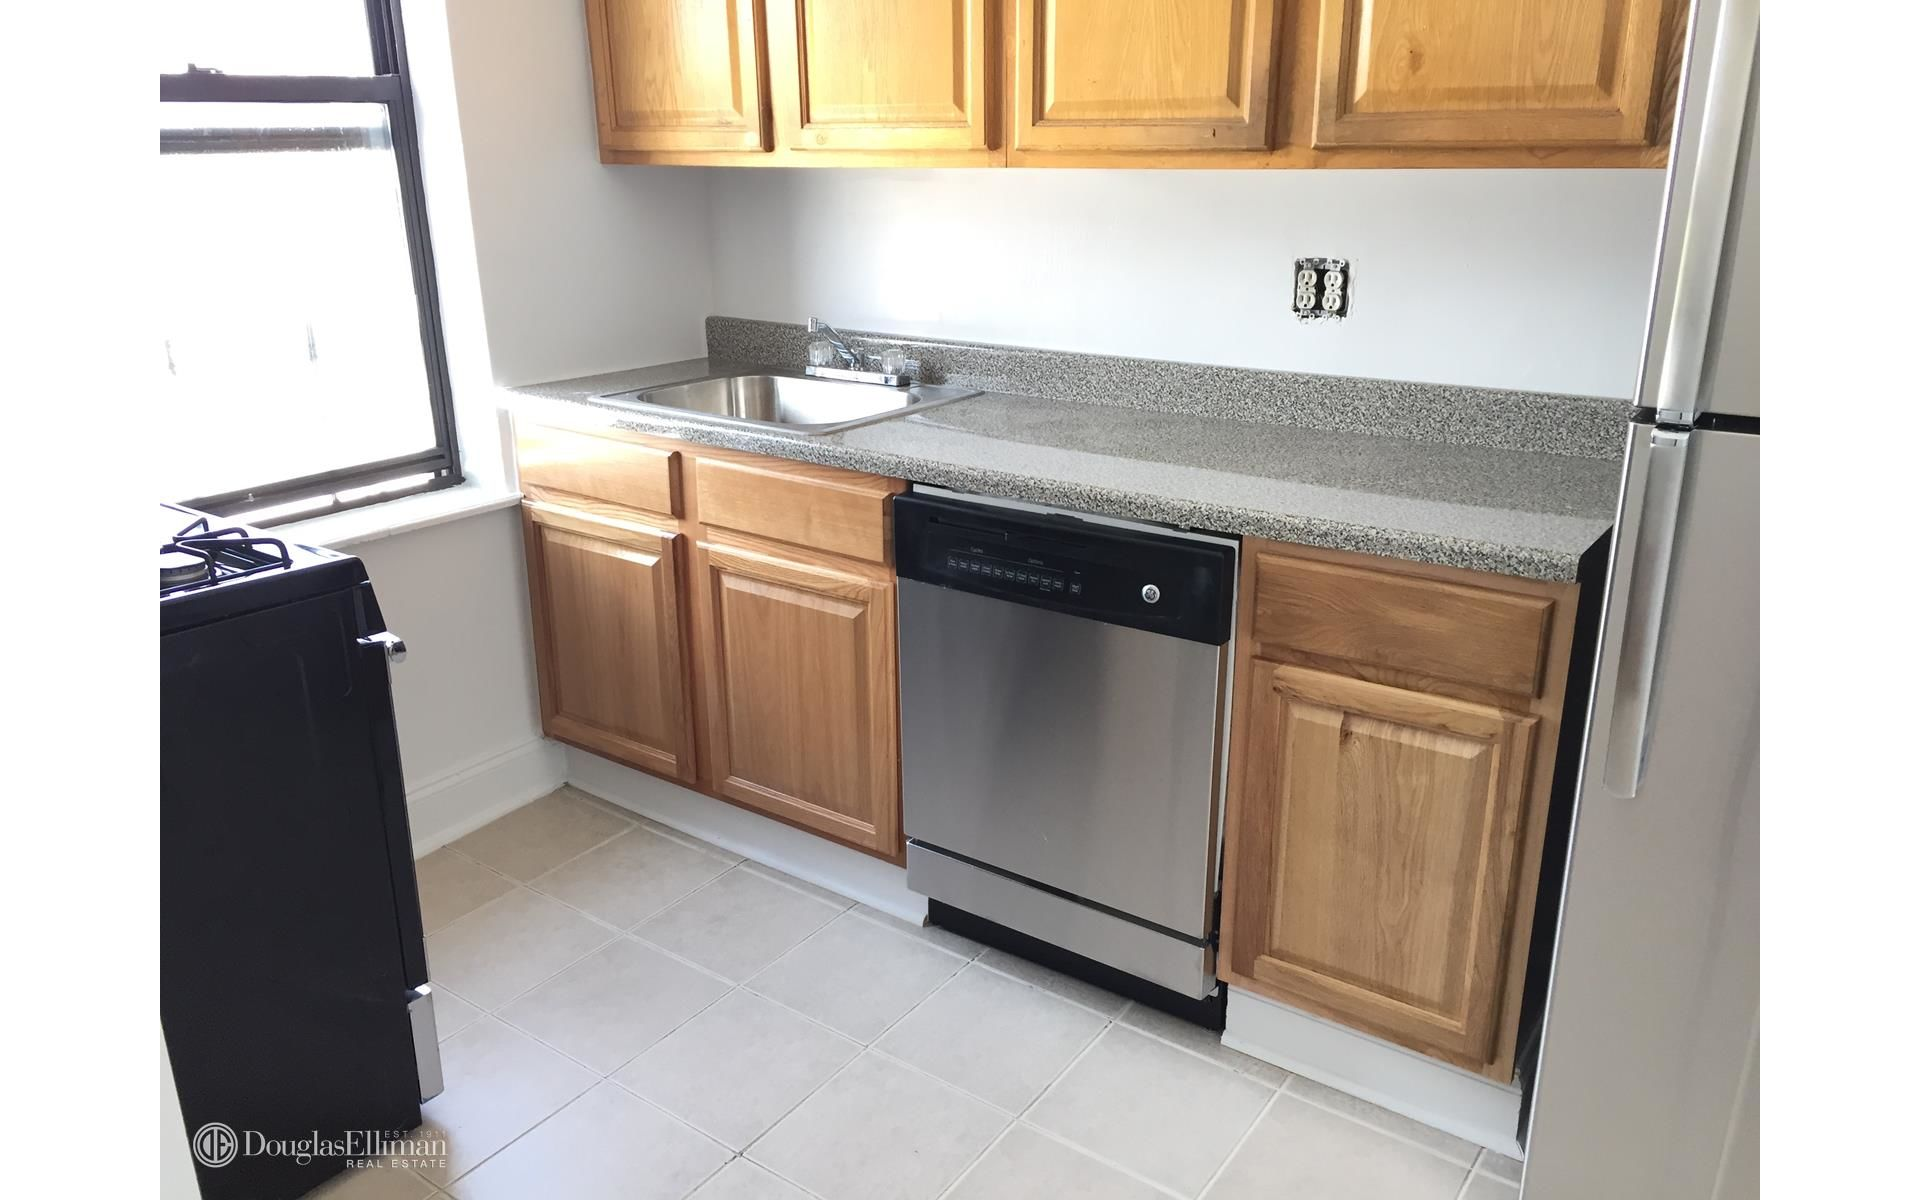 Kitchen cabinets 65th street brooklyn -  3726 65th St Apt 2c Photo 4 Elliman 2601648